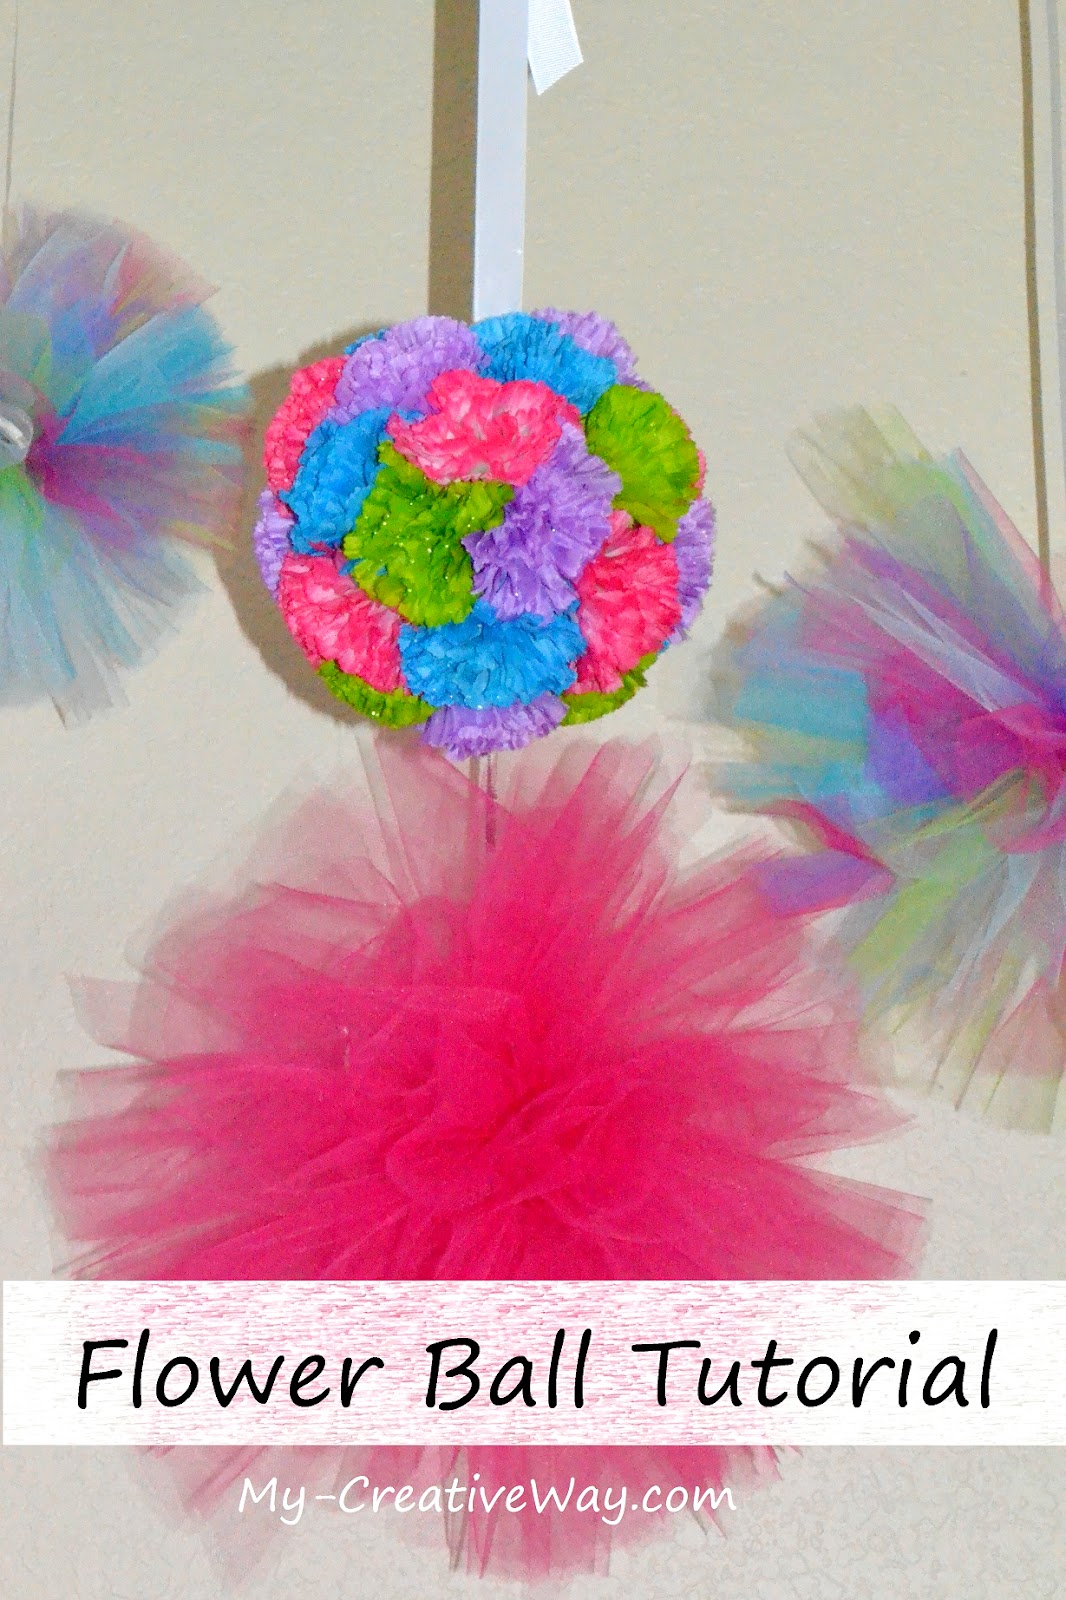 How To Make Hanging Flower Ball Diy